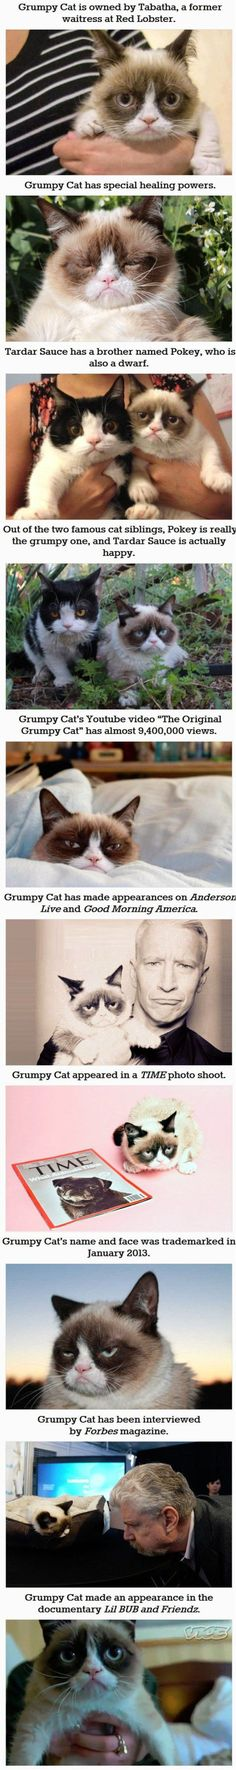 30 things you didn't know about grumpy cat... - The Meta Picture